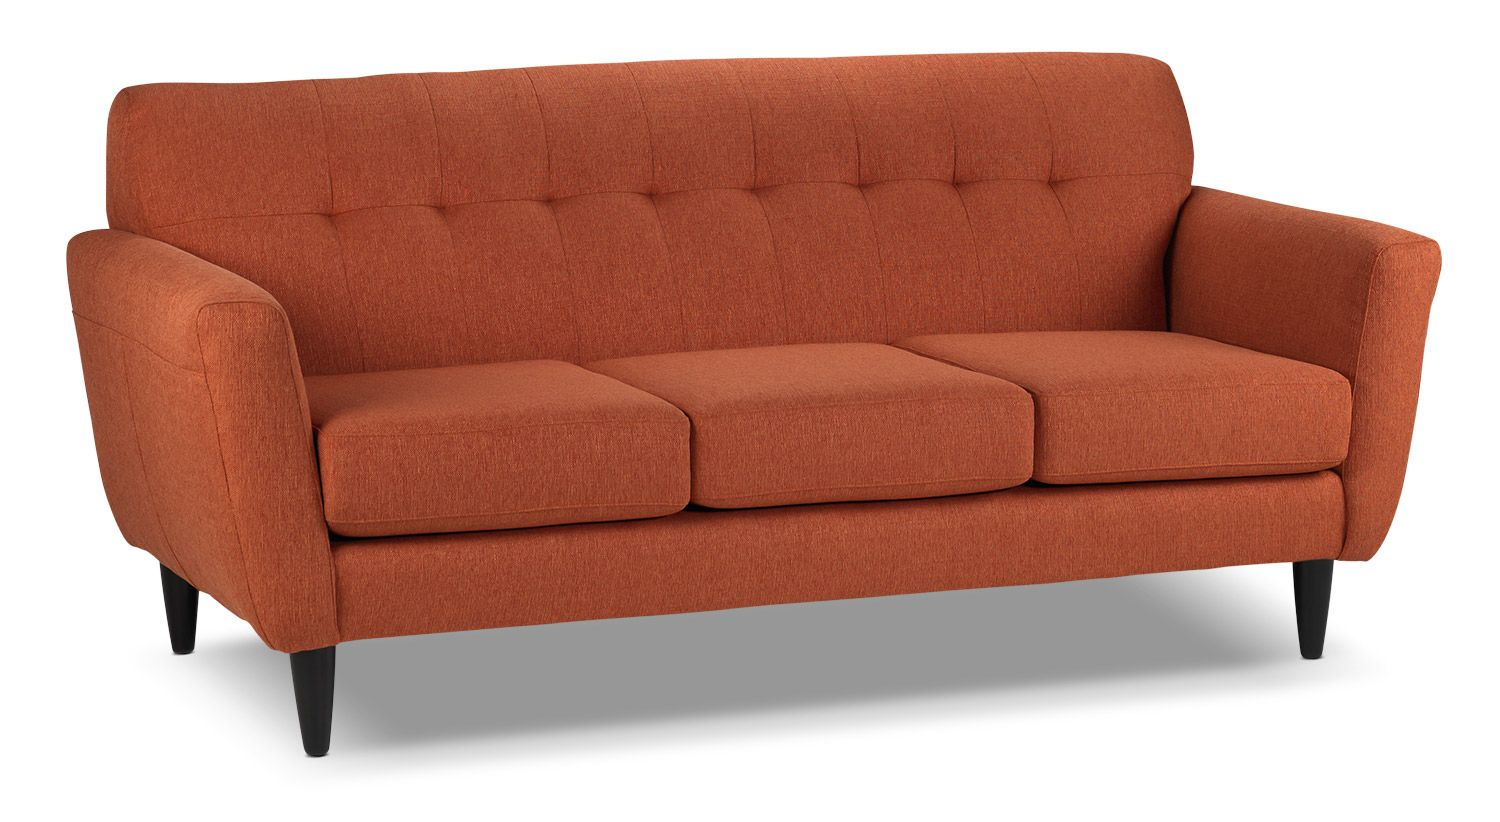 Peachy Cobra Sofa Leons Sofa Couch Furniture Furniture Gmtry Best Dining Table And Chair Ideas Images Gmtryco